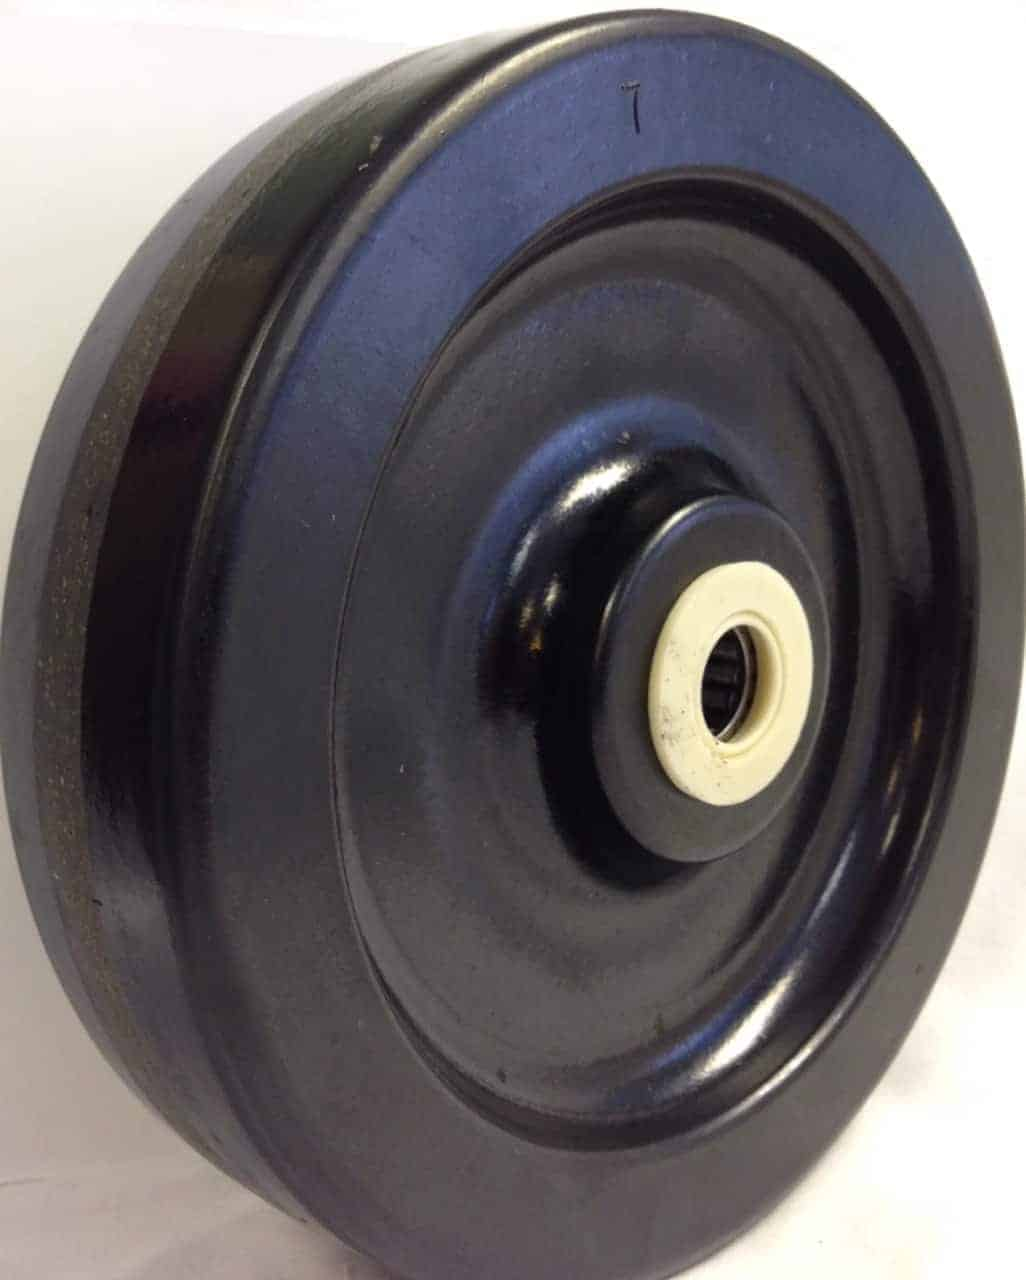 12″ Phenolic Wheel With 3-1/4″ Hub 1″ Roller Bearing 3000 Lbs Capacity